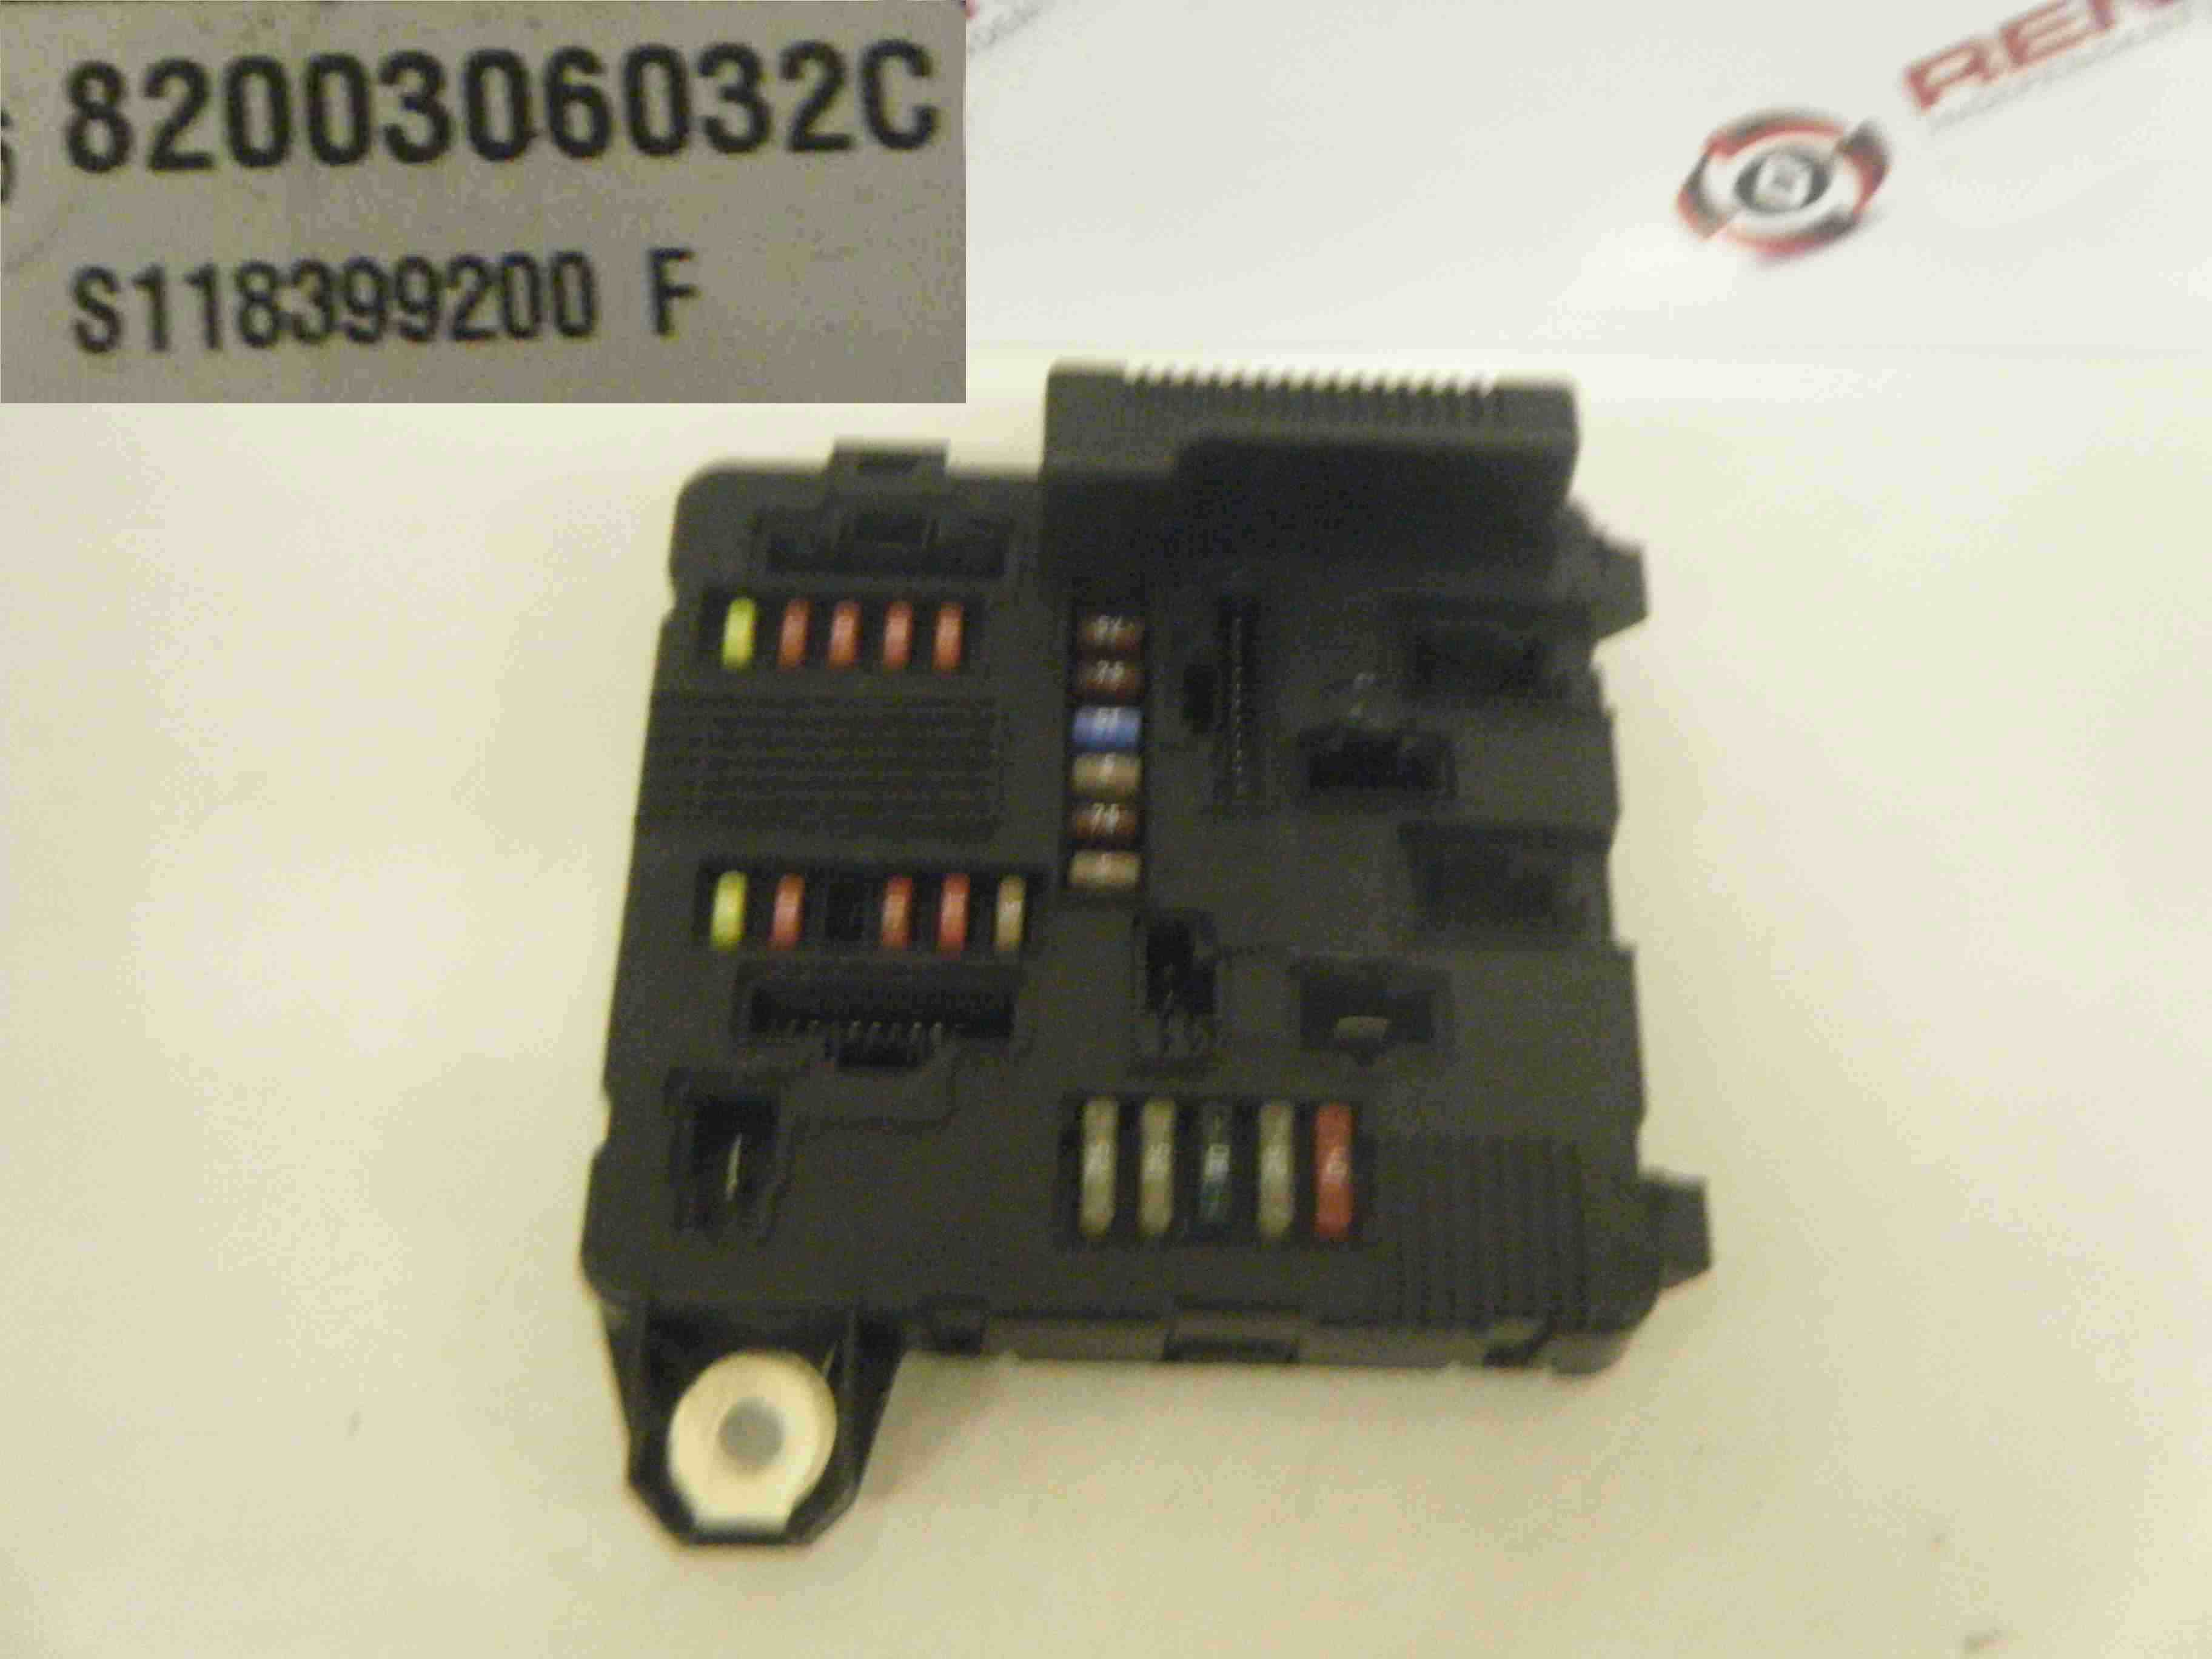 Renault Megane 2003 Fuse Box Location : Renault megane fuse box wiring library